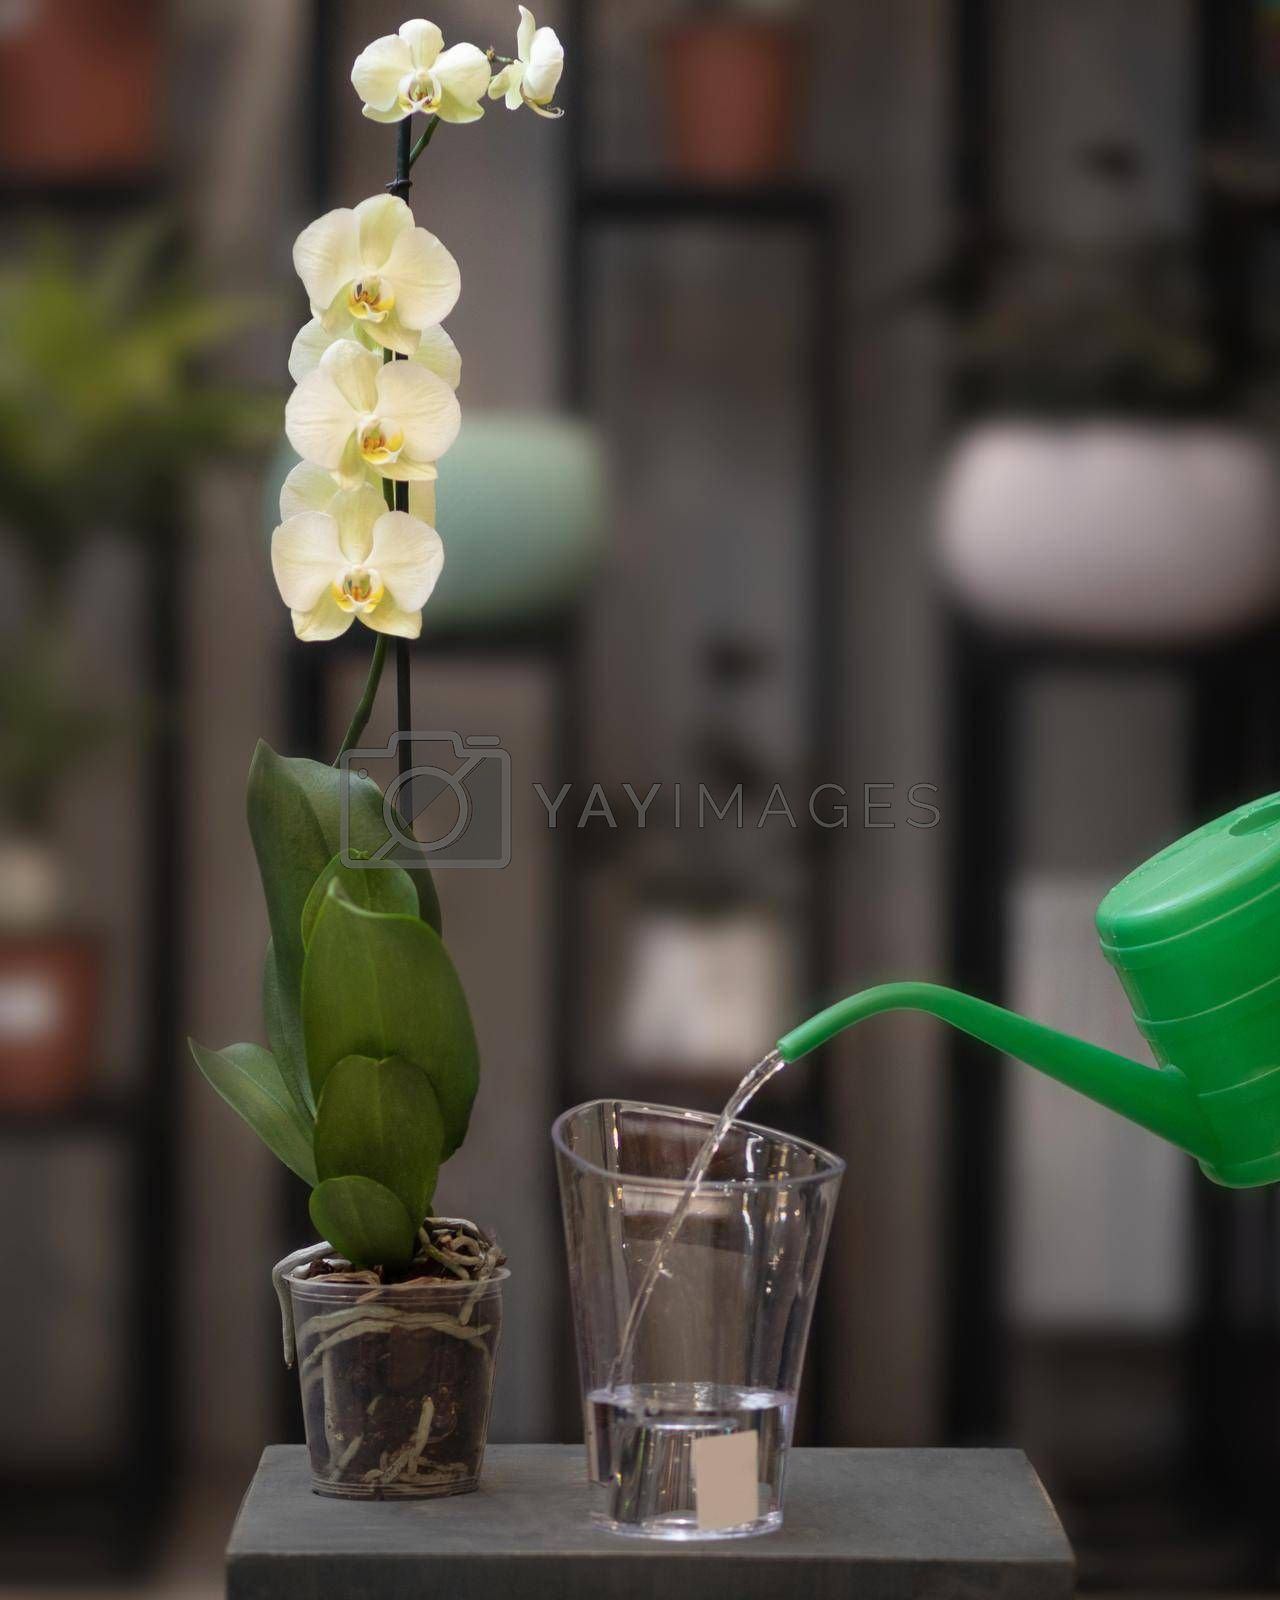 Yellow Phalaenopsis, Moth orchid flowers in the pot with green watering can